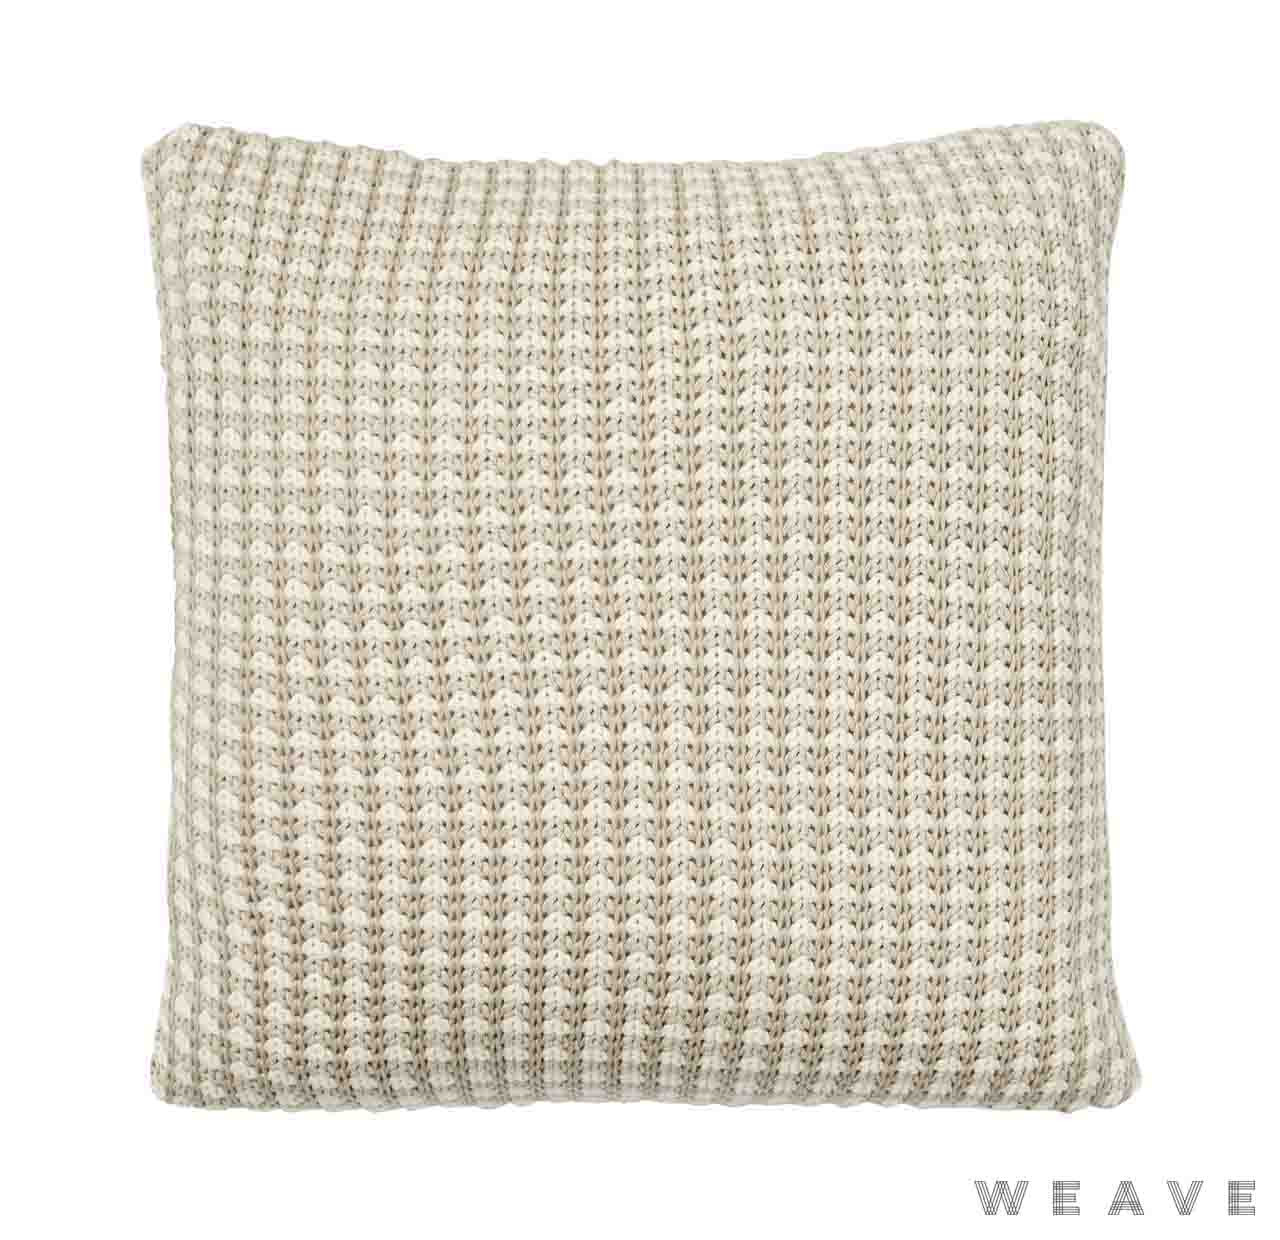 Weave - Sausalito Cushion - Sandstorm (Pack of 2)  | Cusion Fabric - Beige, Geometric, Weave